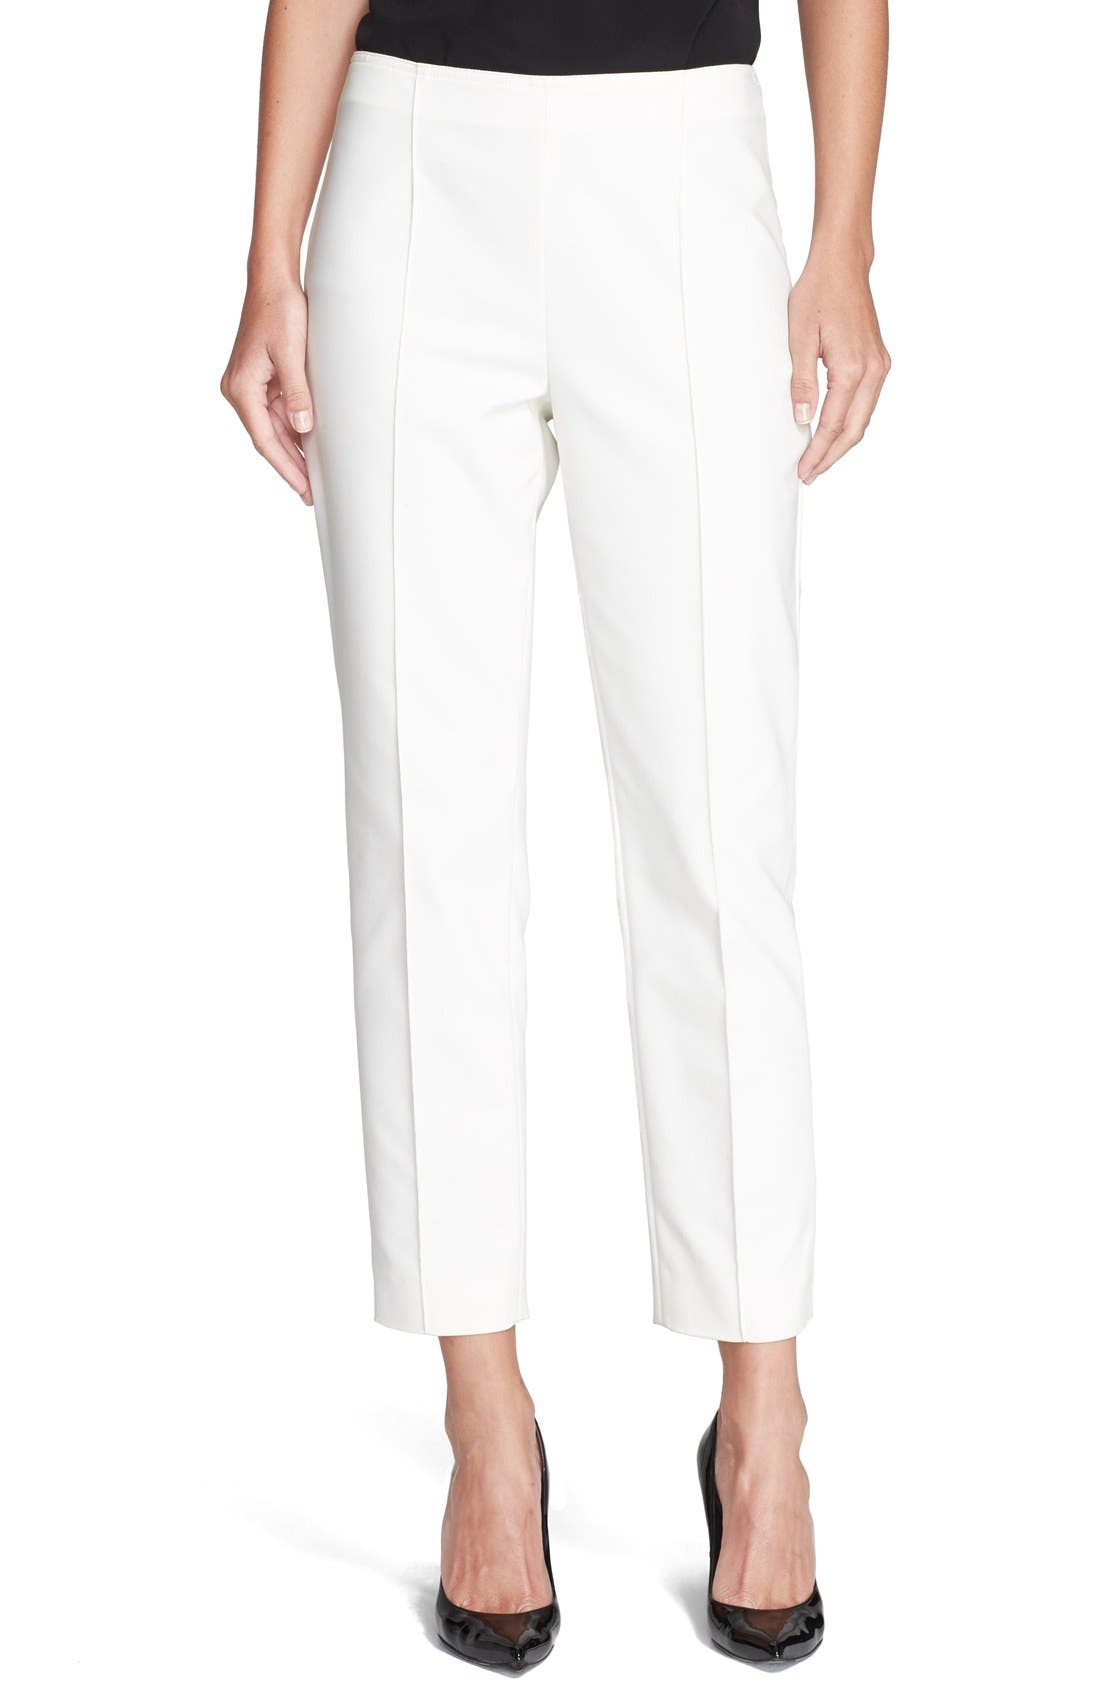 Alternate Image 1 Selected - St. John Collection 'Alexa' Stretch Micro Ottoman Ankle Pants